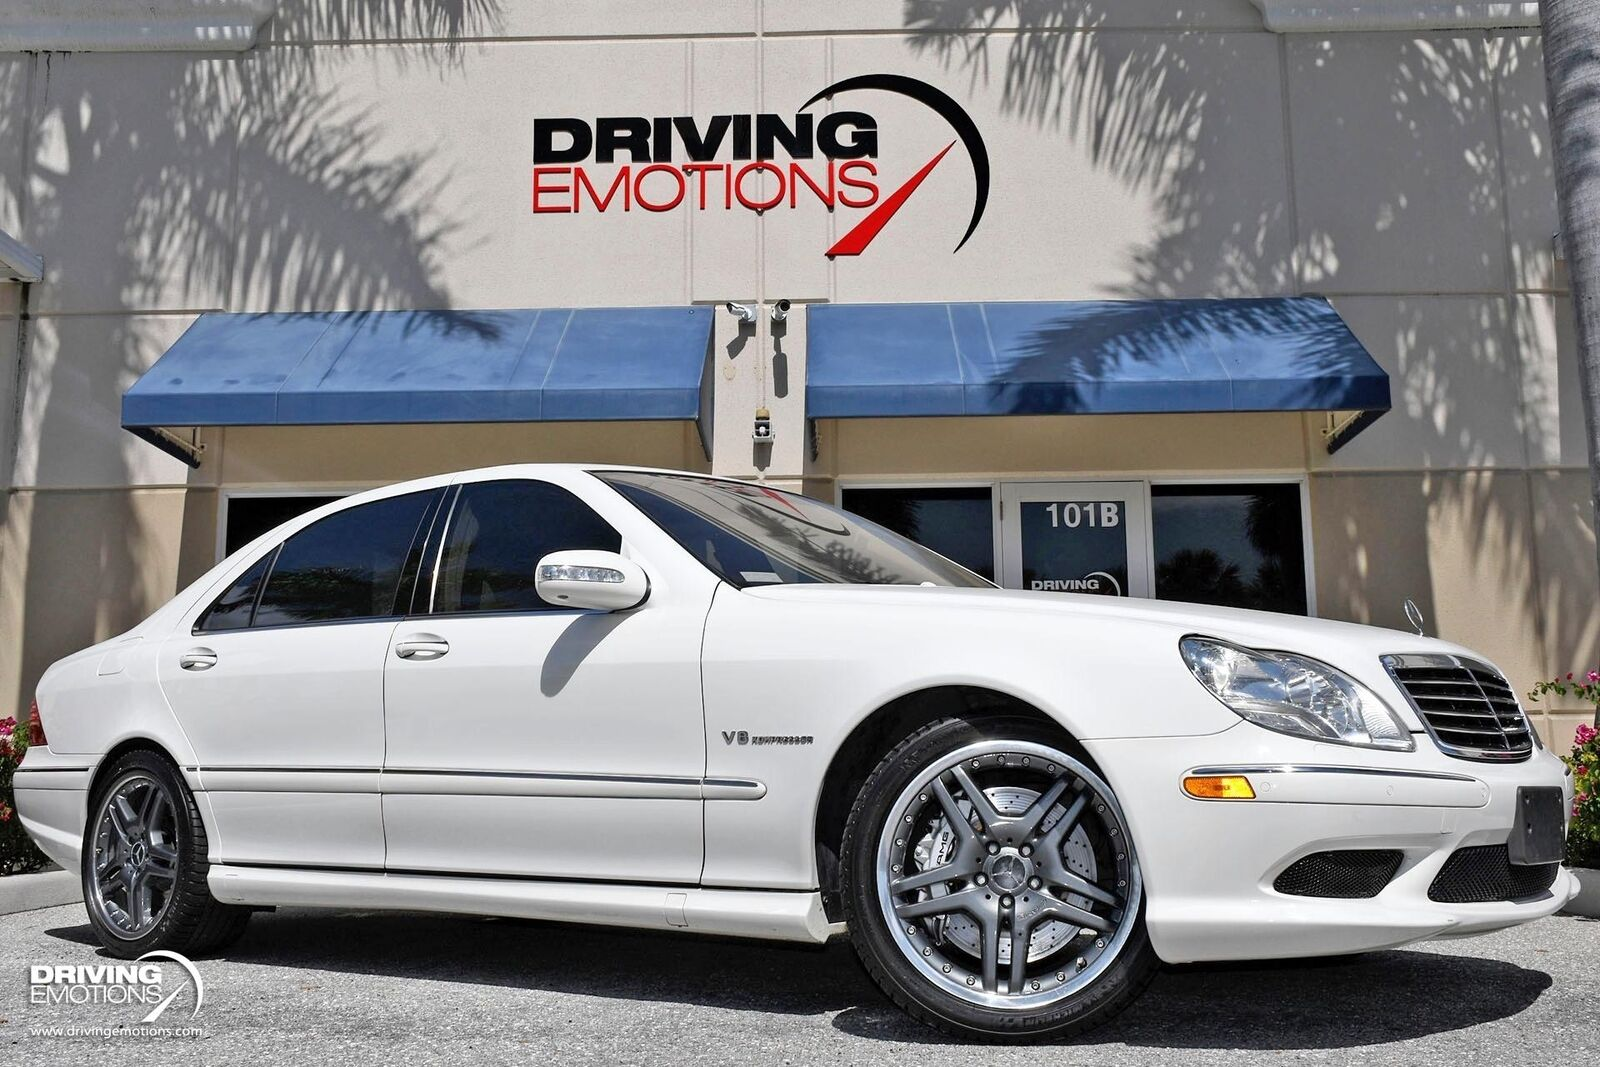 2006 Mercedes-Benz S55 AMG S 55 AMG Upgraded S65 Wheels!! 65589 Miles Alabaster